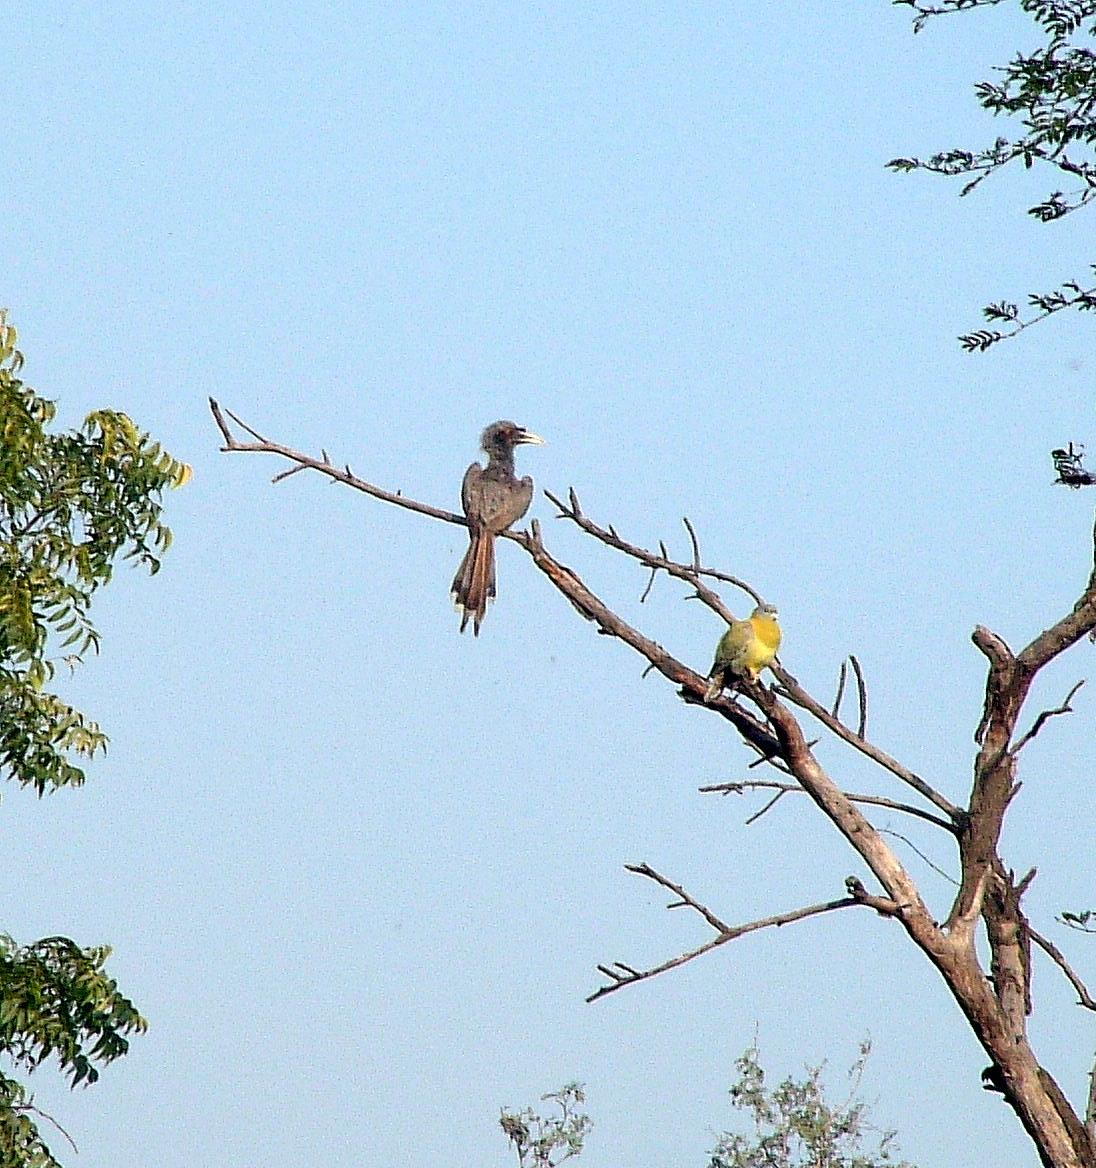 Van Harris - Indian Hornbills & Yellow-footed Pigeon; Bharatpur, India, 1-26-2006